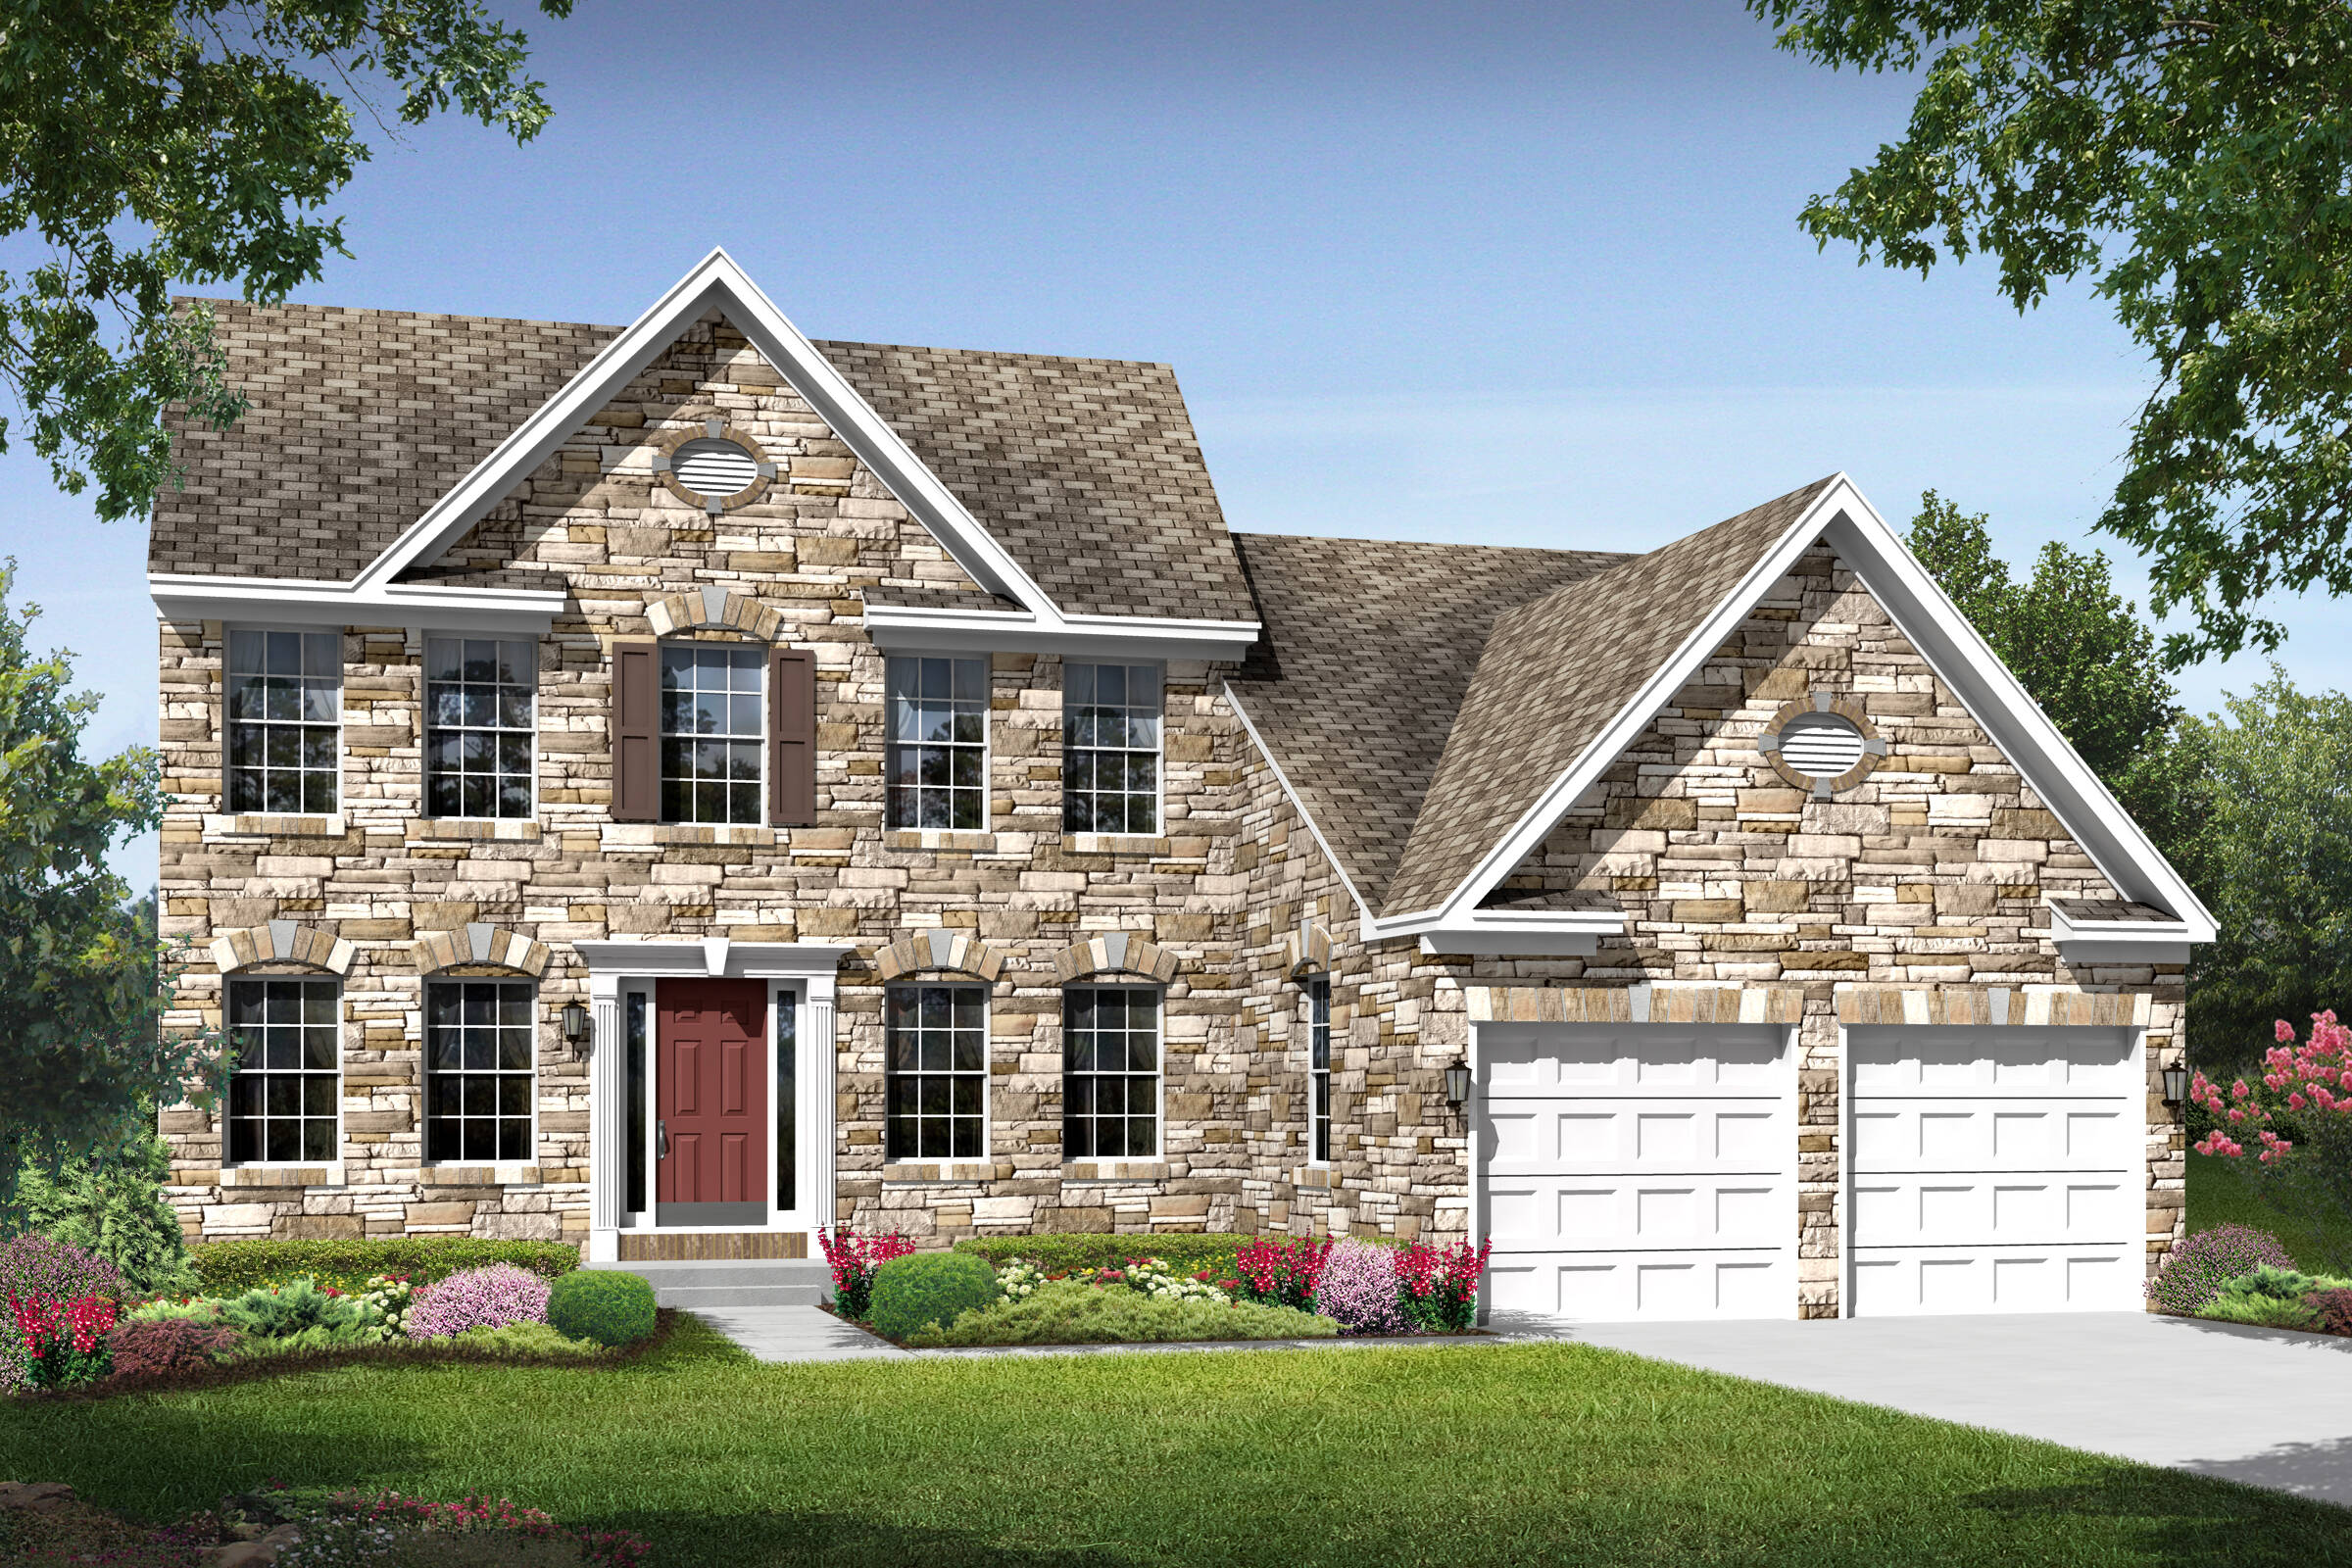 maine II traditional new homes at chestnut ridge in delaware